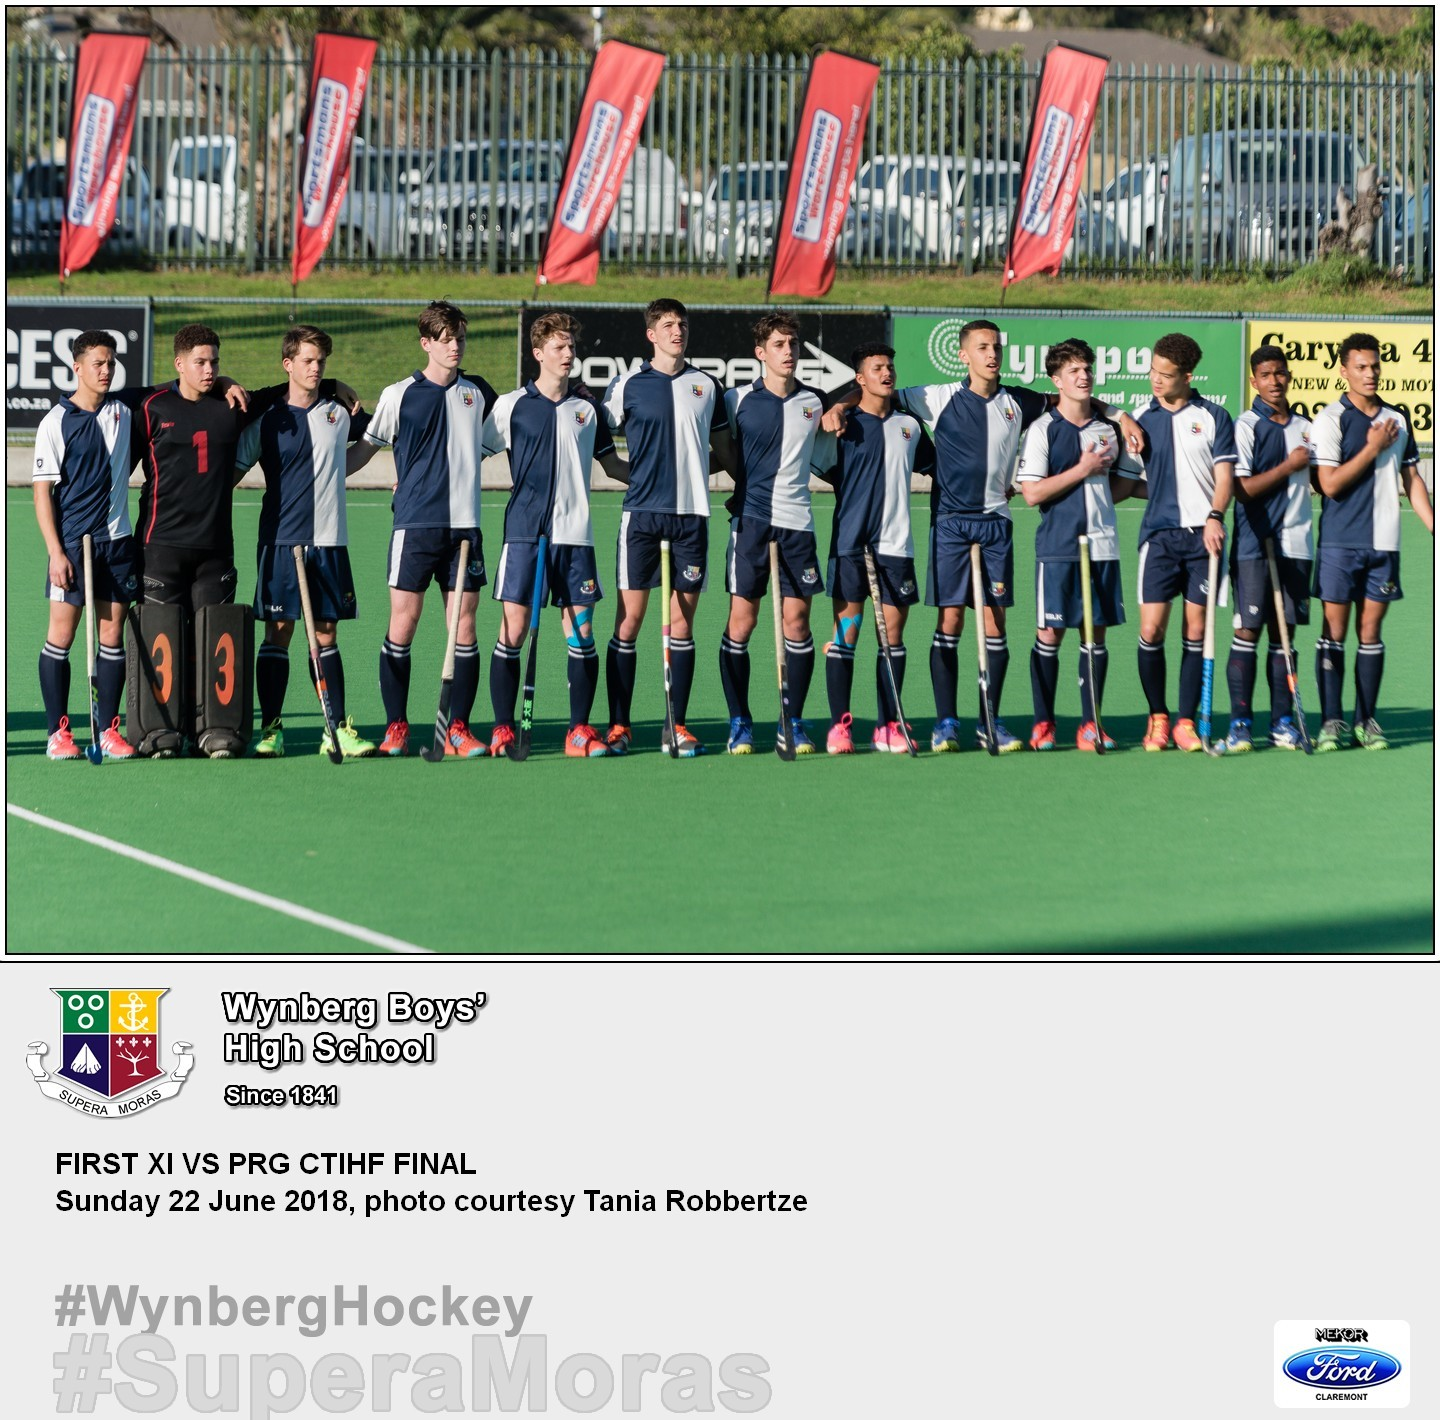 1st XI vs Paul Roos, Sunday 22 July 2018